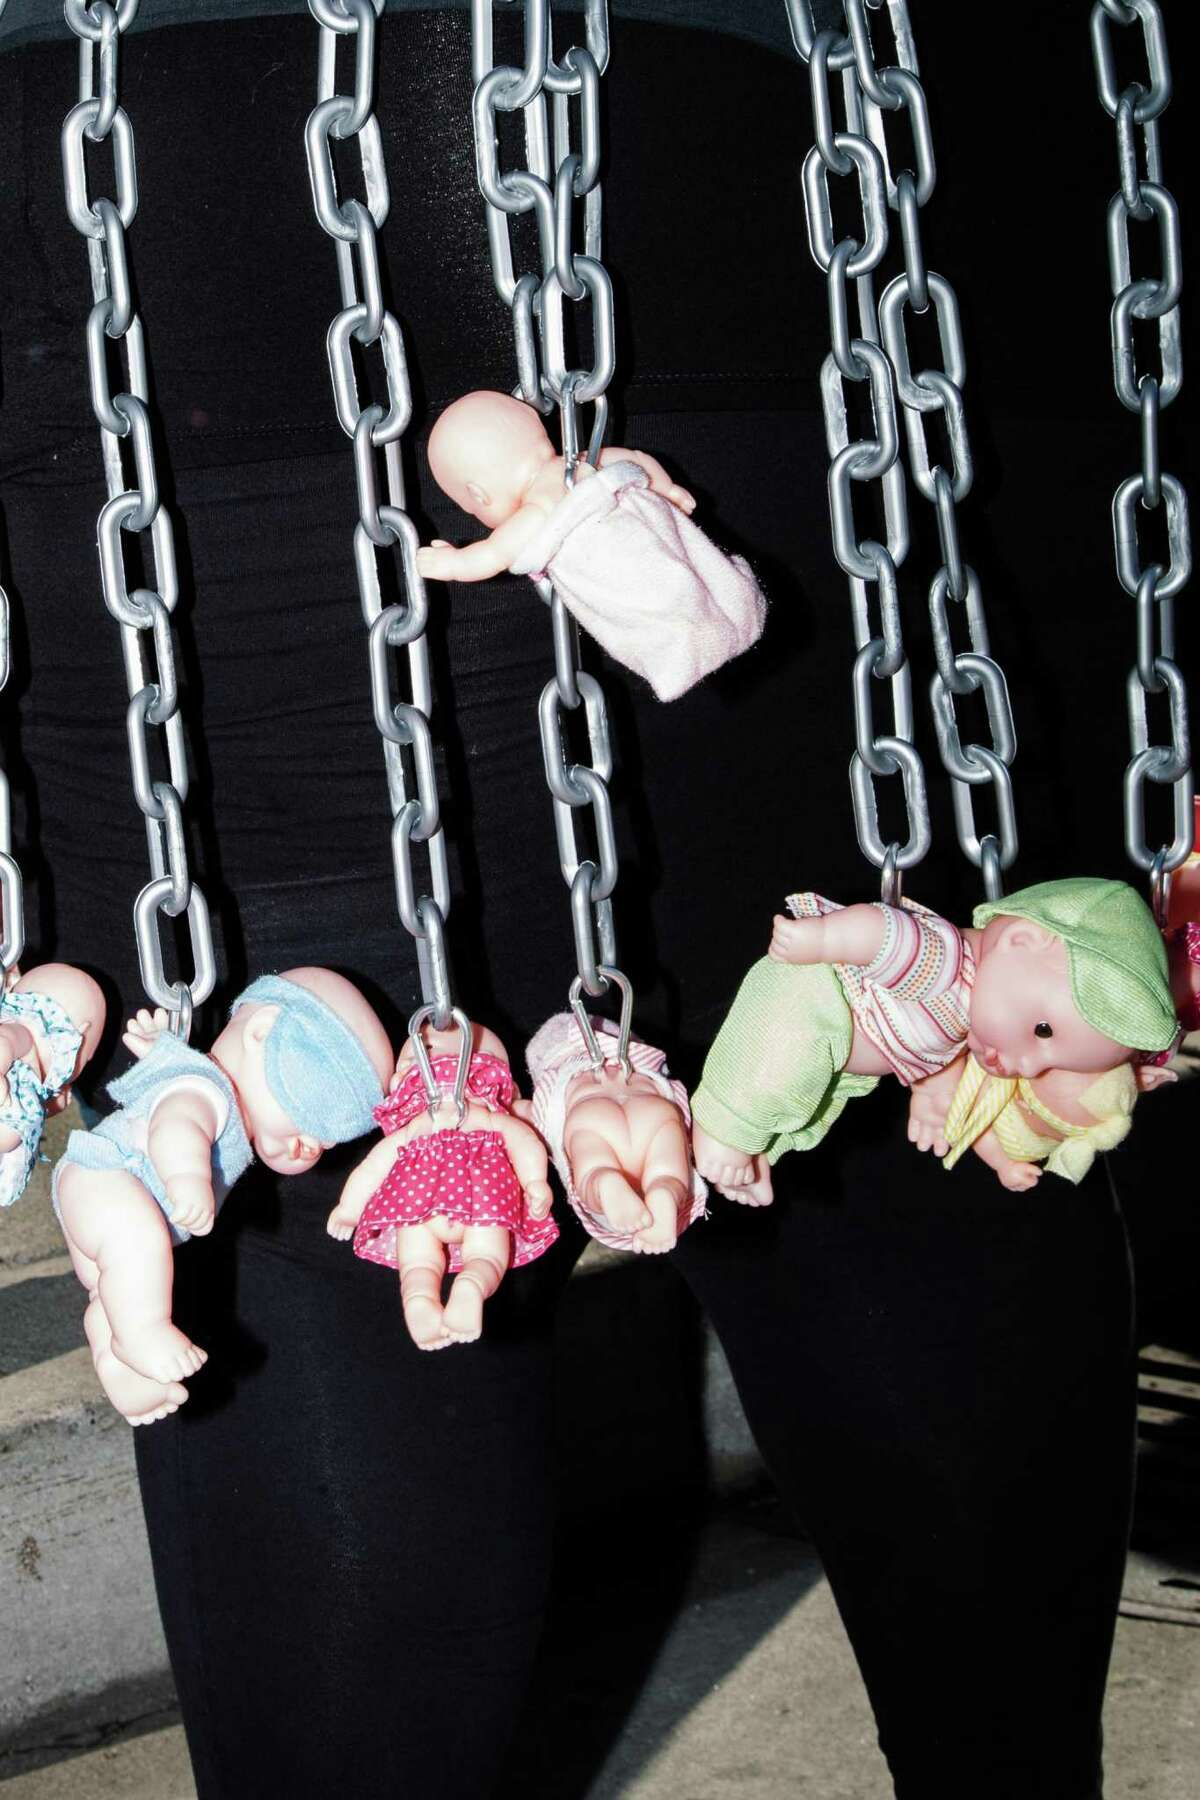 A protester carries chains with baby dolls attached at the march in support of reproductive rights in San Francisco.